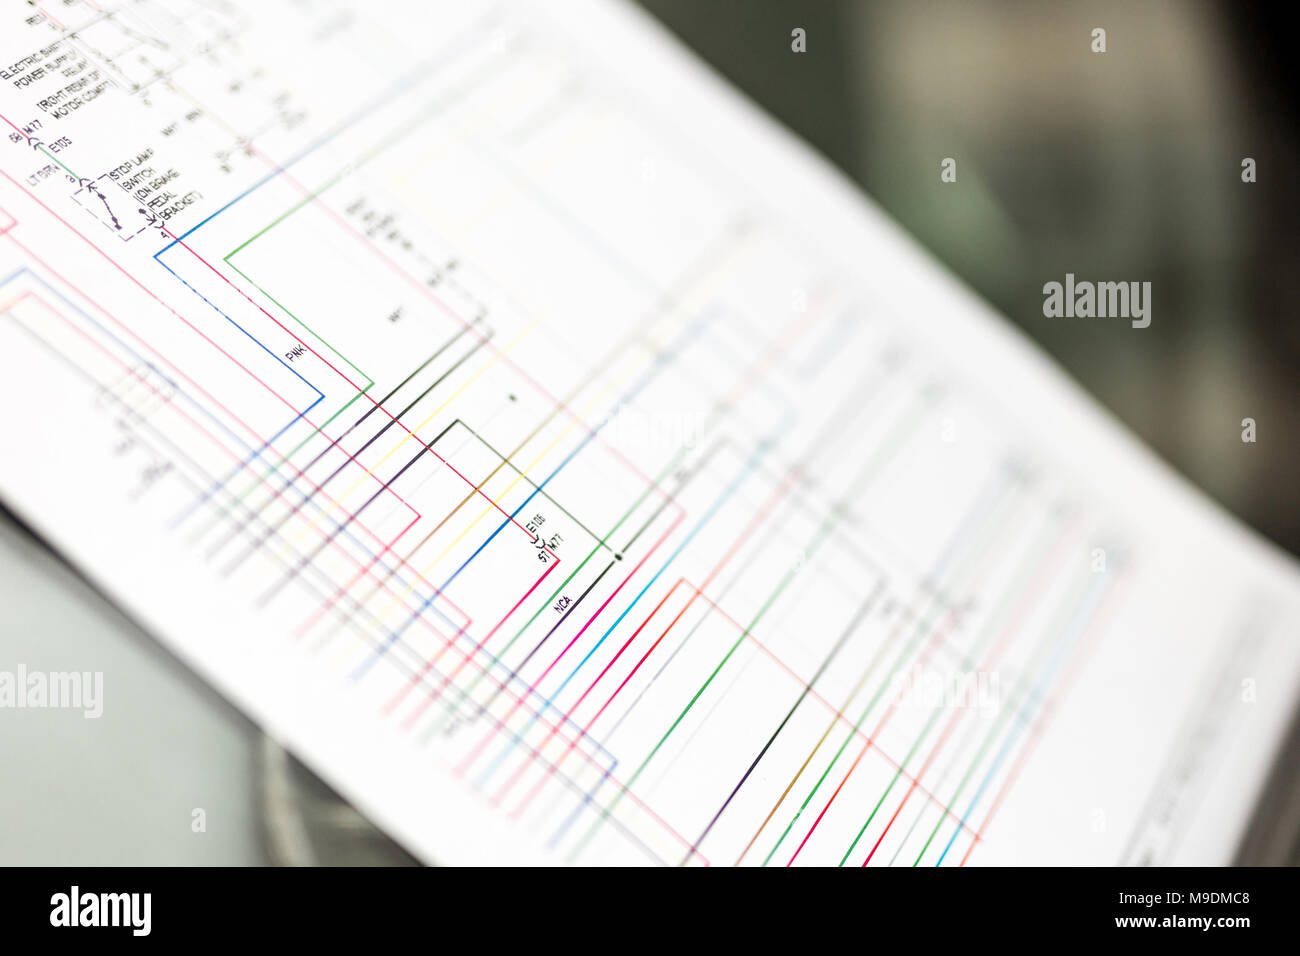 Wiring Diagram Stockfotos & Wiring Diagram Bilder - Alamy